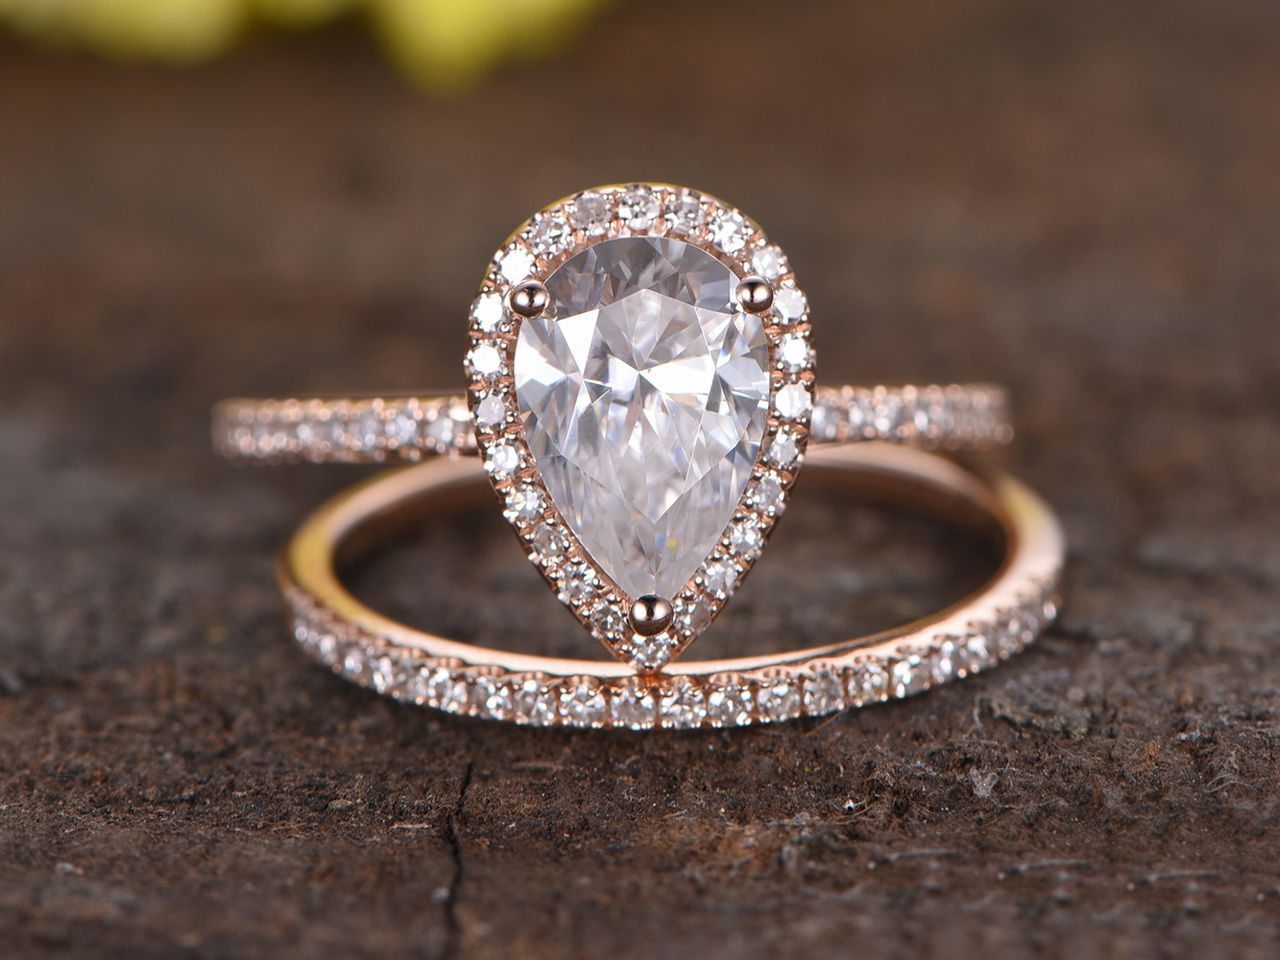 15 Carat Pear Shaped Moissanite Engagement Ring Set Diamond Matching Band  14k Rose Gold Halo Stacking